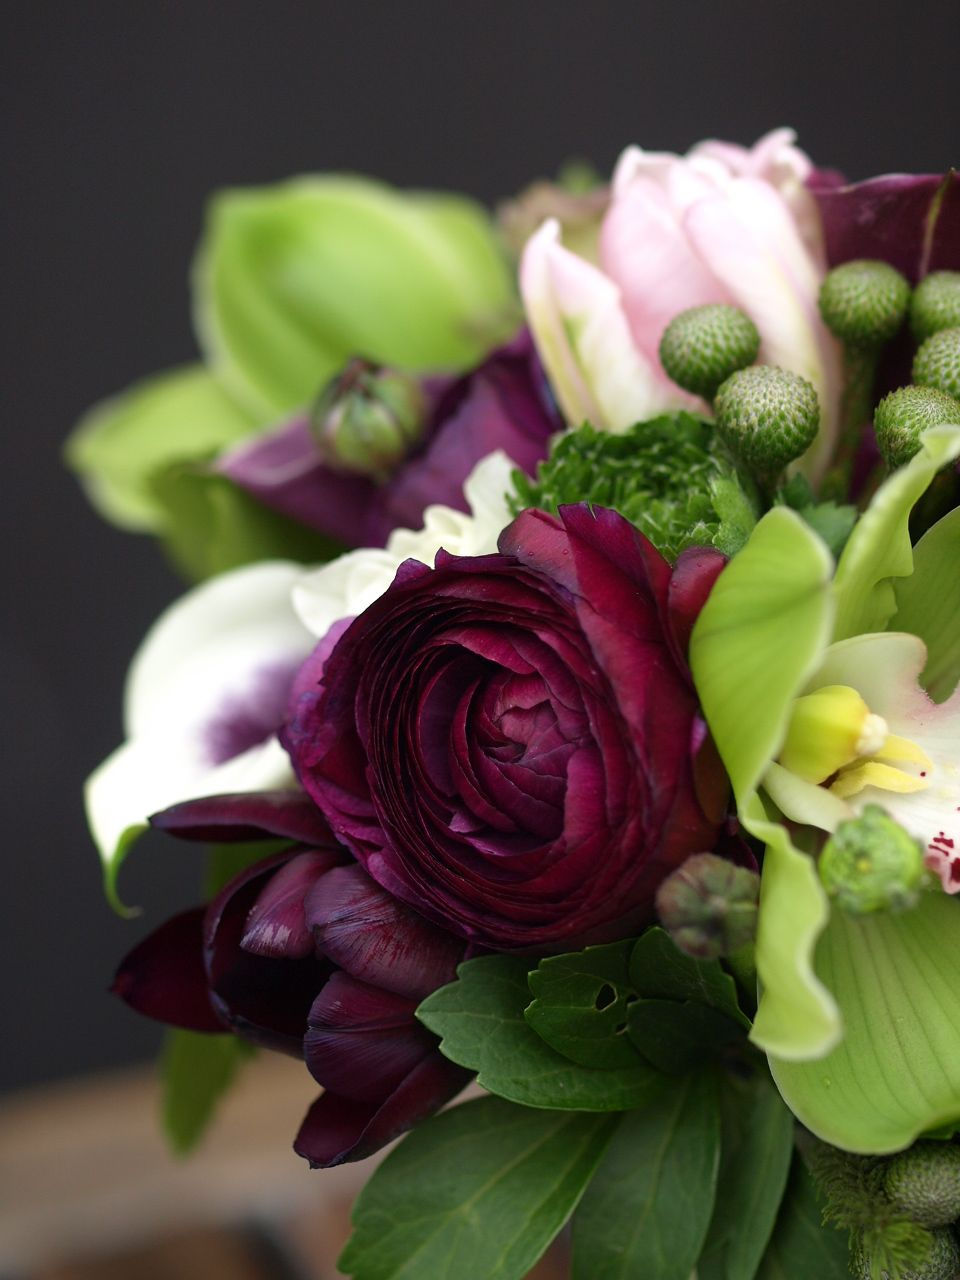 Rosehip Social Flower And Event Design Brooklyn Ny Flowers Beautiful Flowers Pretty Flowers